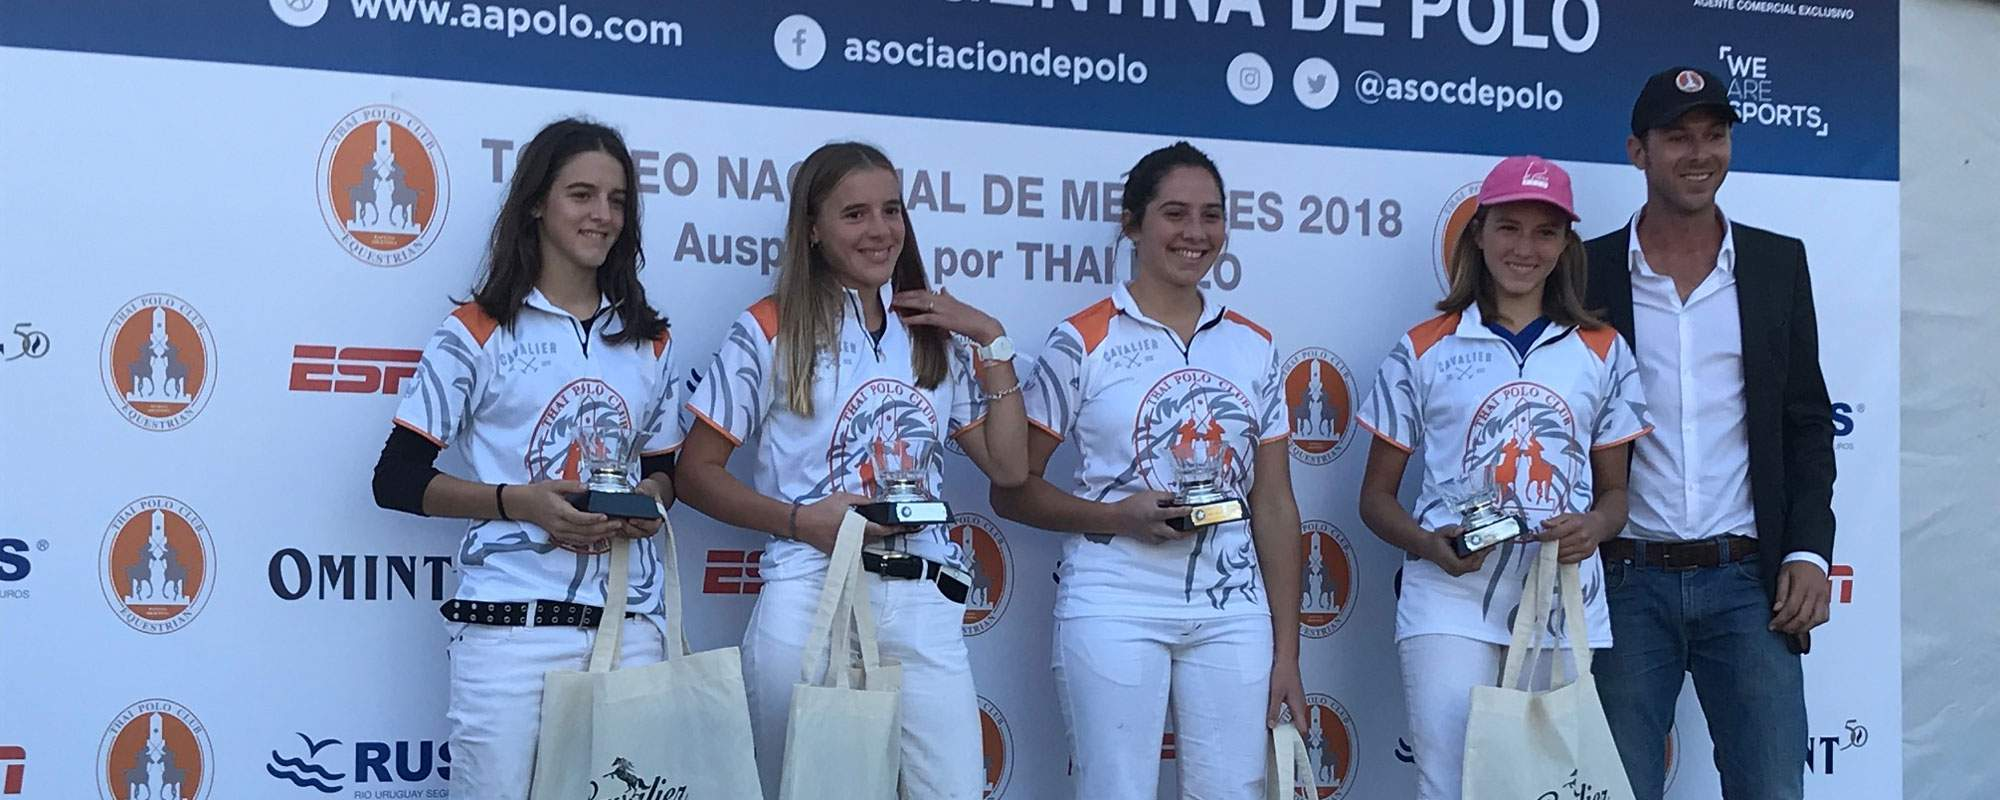 THE SOFIA QUATRO VIENTOS winner of the AAP National Youth Championship 2018 - Category Juvenile Female